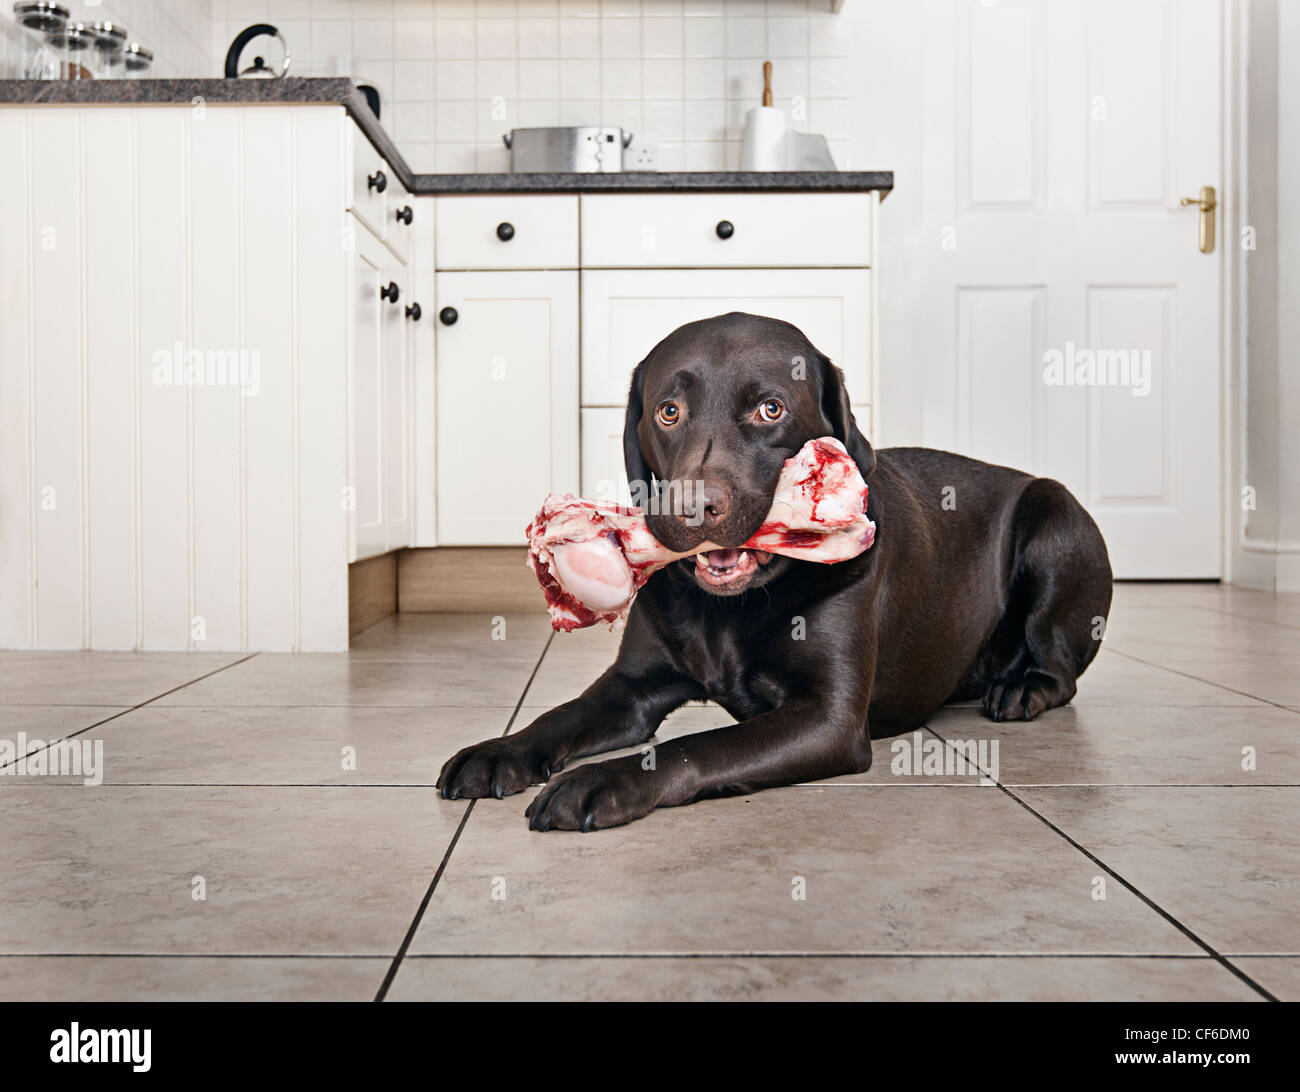 Chocolate Labrador with large Bone in Kitchen - Stock Image